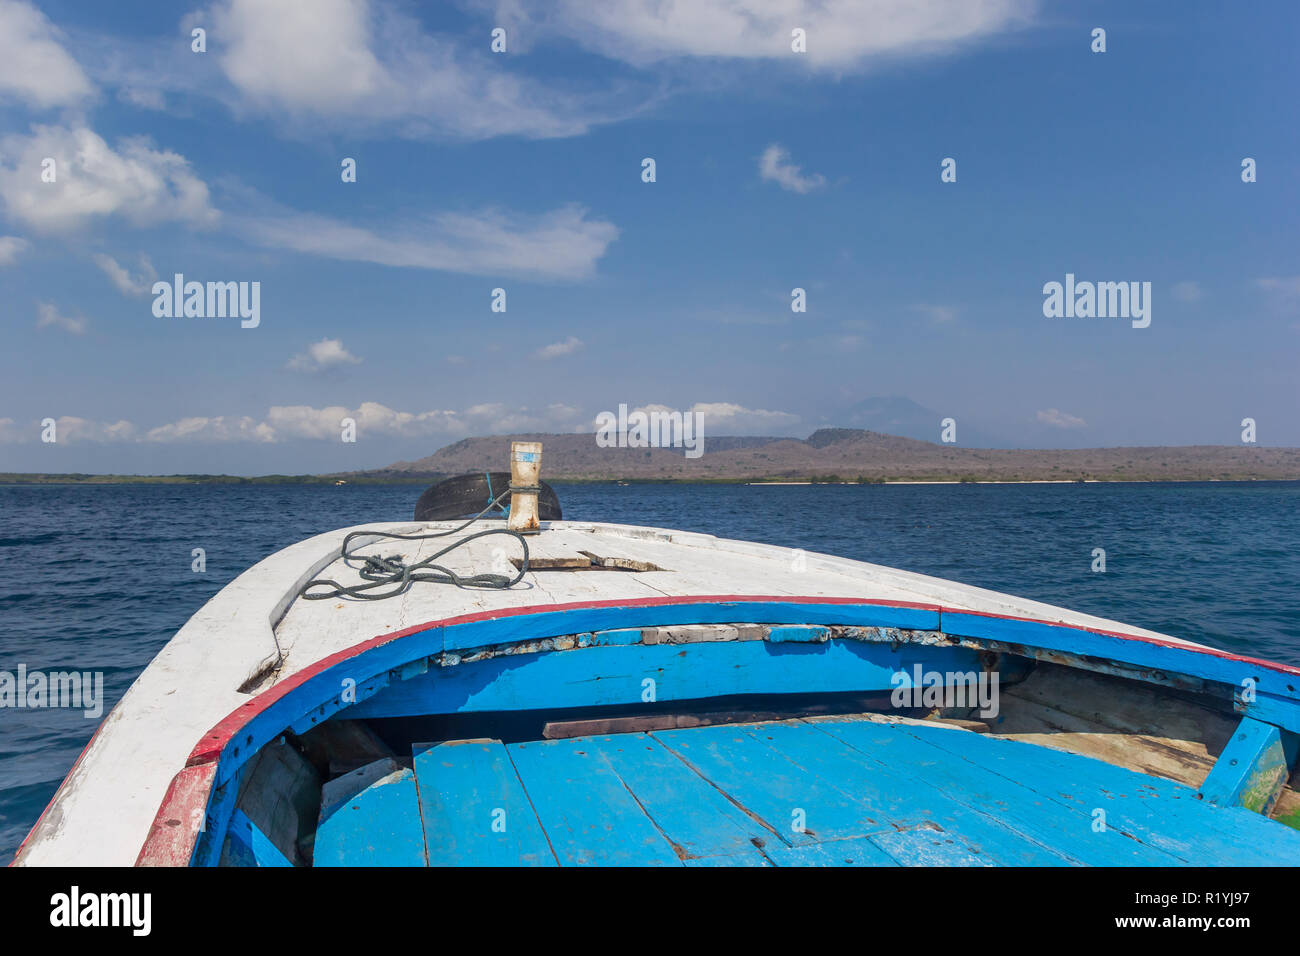 Bow of a traditional wooden boat in the Bali Barat National Park, Indonesia - Stock Image